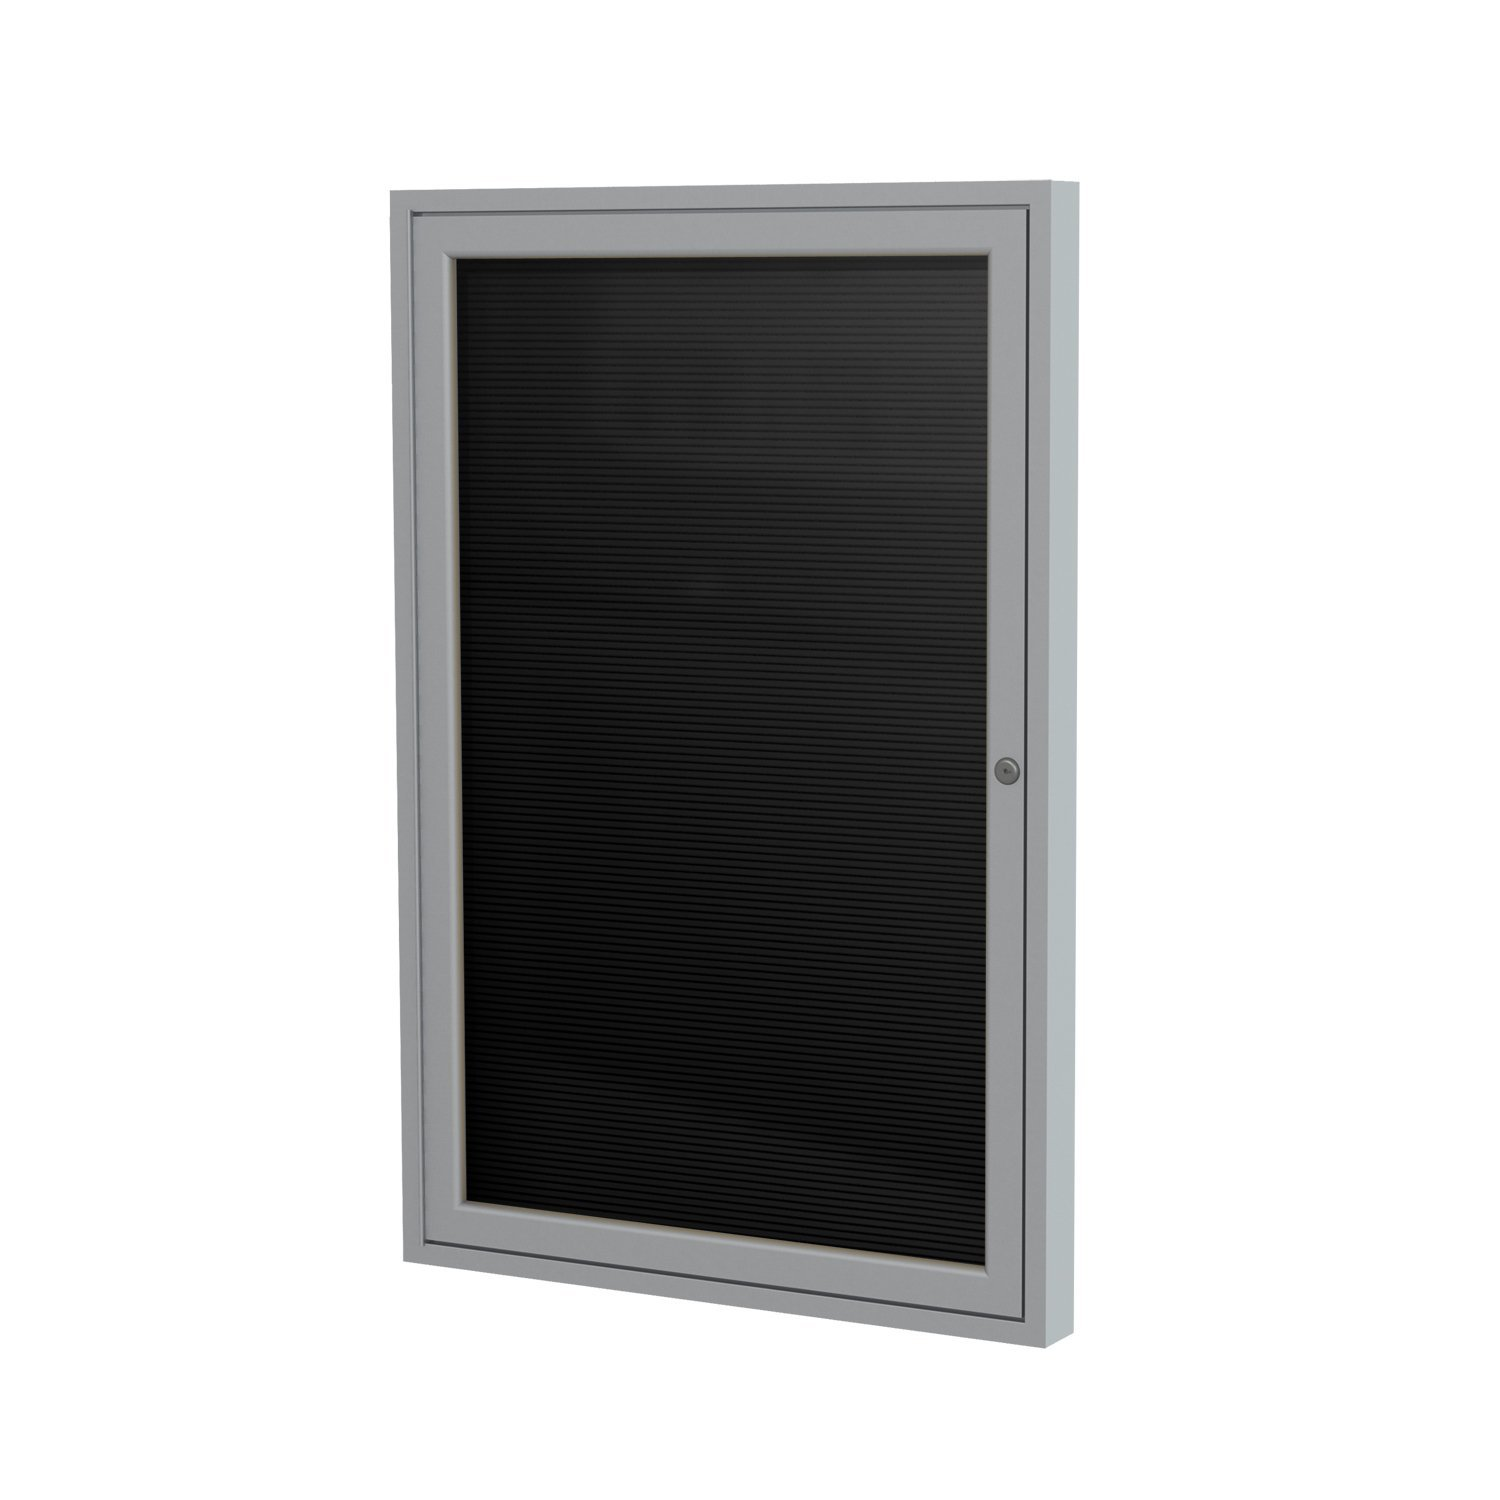 Ghent 36'' x 30'' 1 Door Outdoor Enclosed Vinyl Letter Board, Black Letter Panel, Satin Aluminum Frame (PA13630BX-BK)